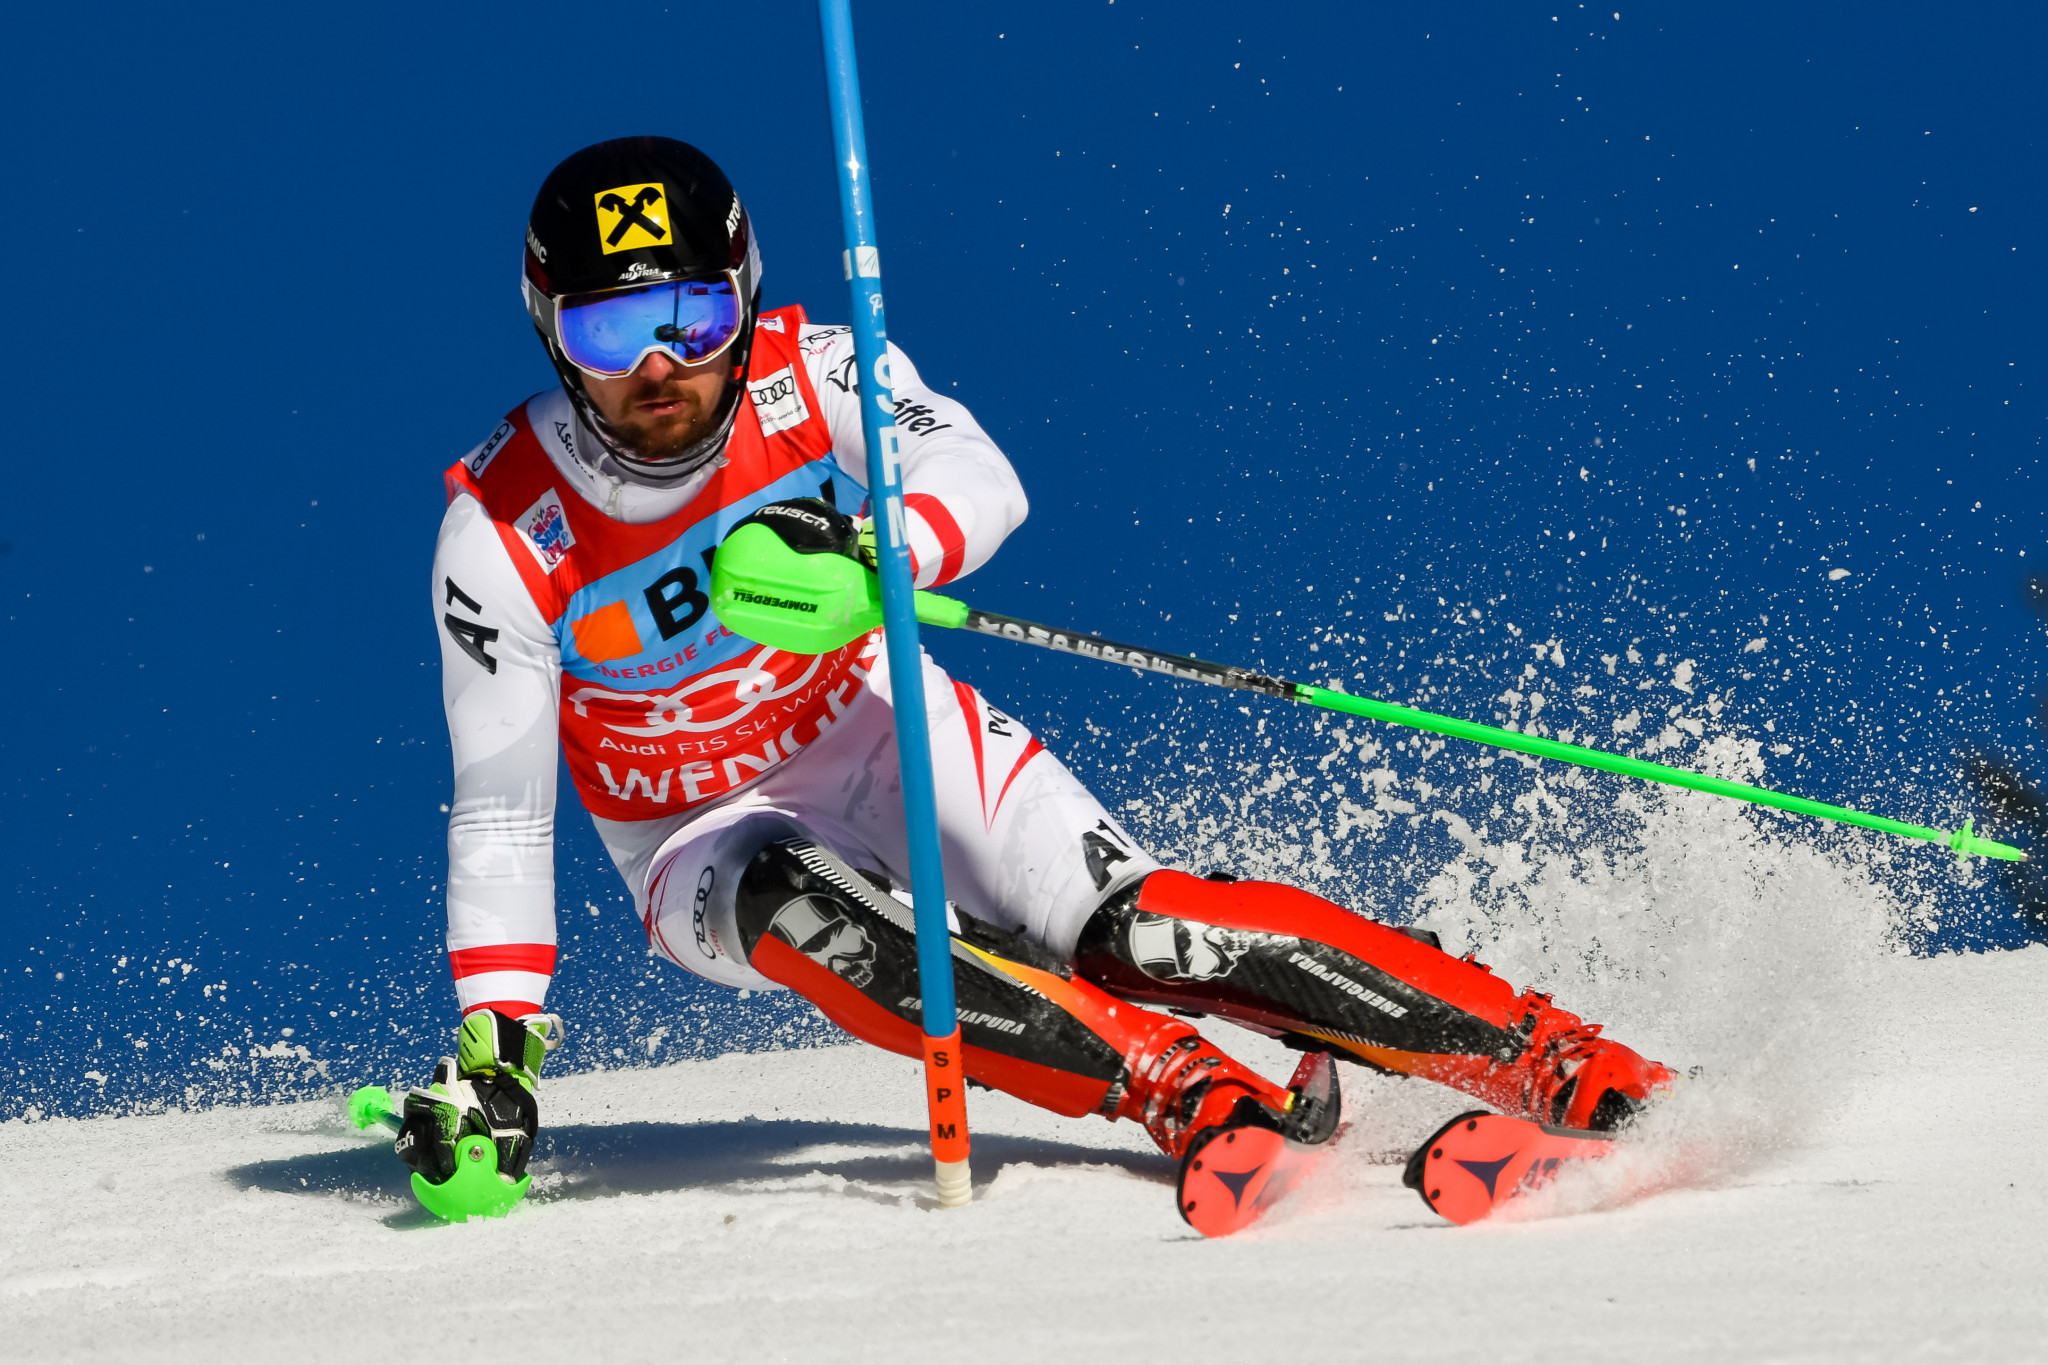 Lindsey Vonn dominates downhill training in Italy